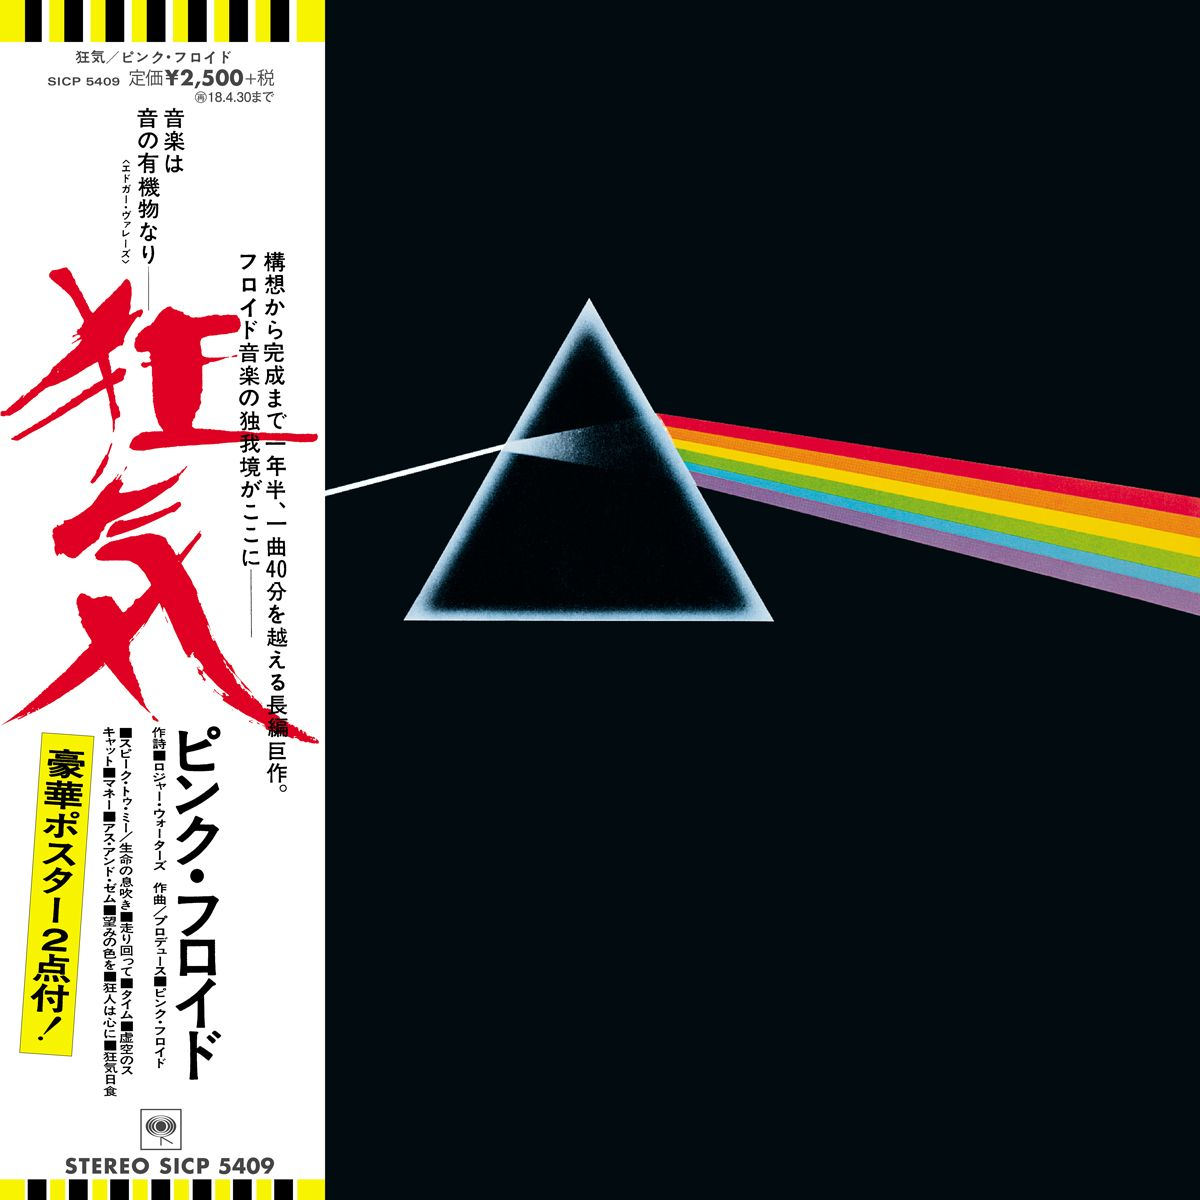 狂気/The Dark Side of the Moon